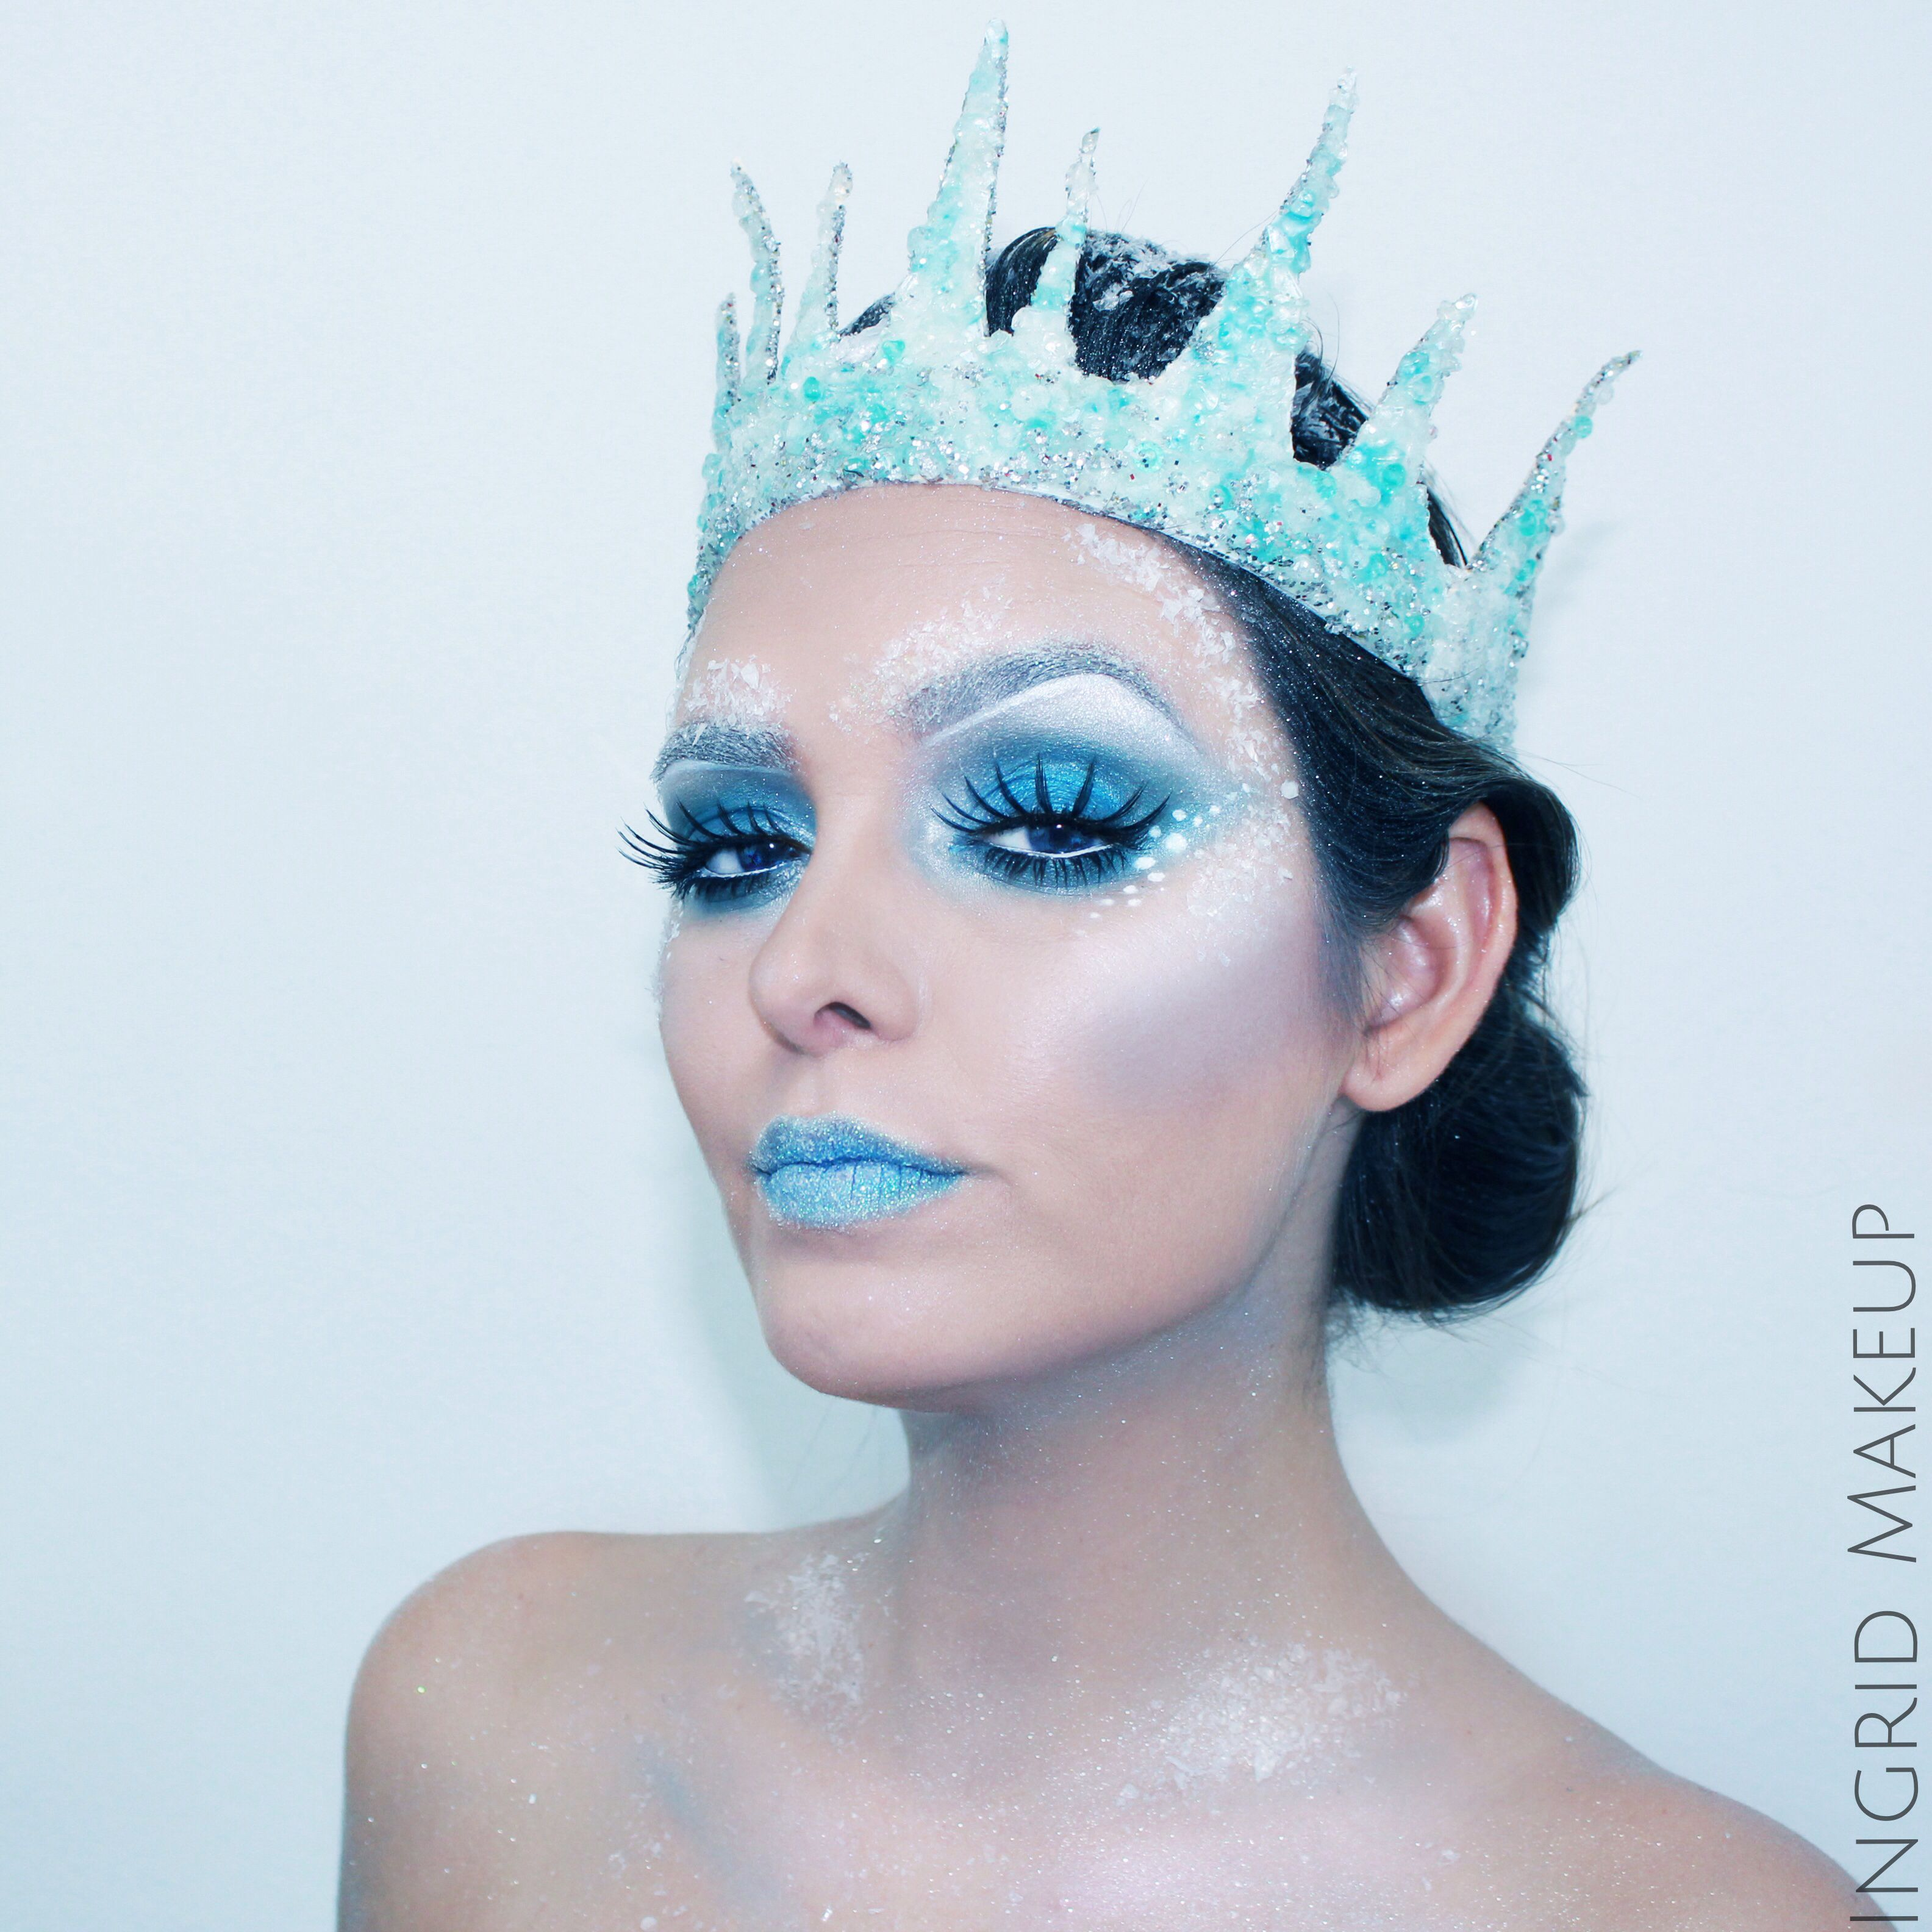 The Ice Queen Makeup By The Amazing Ingrid Makeup Photo By